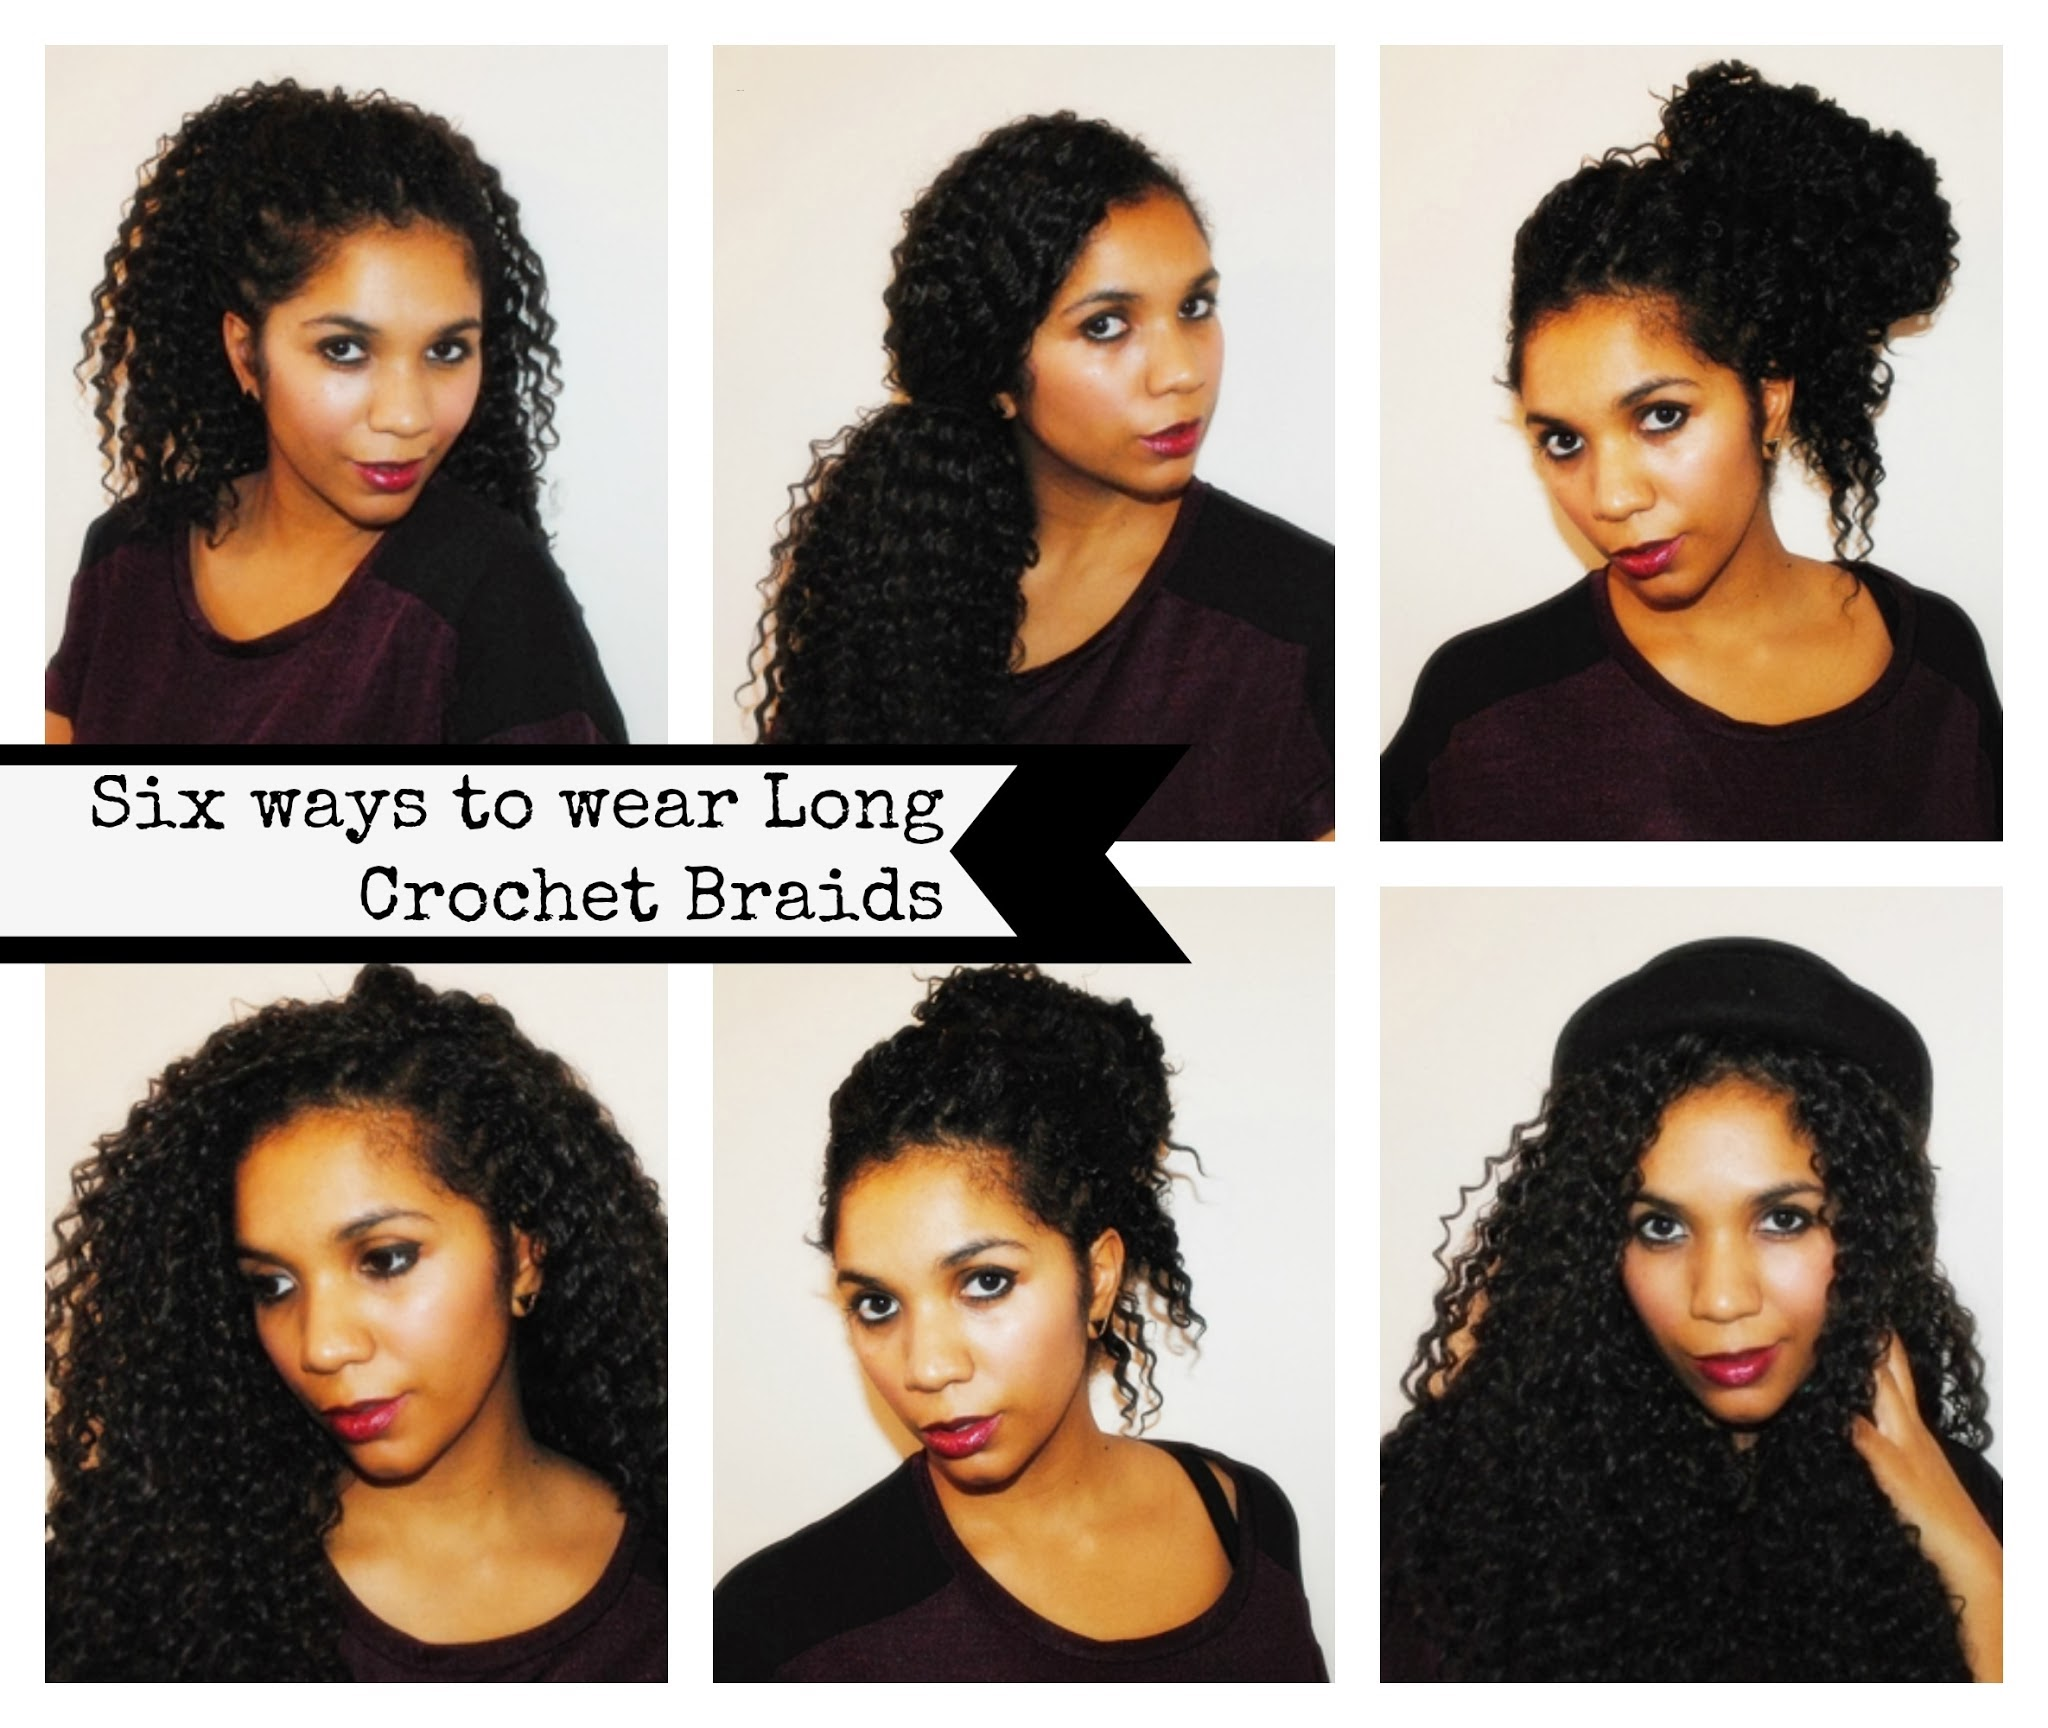 Six ways to wear Long Crochet Braids (right to left) - 1. Super high ...